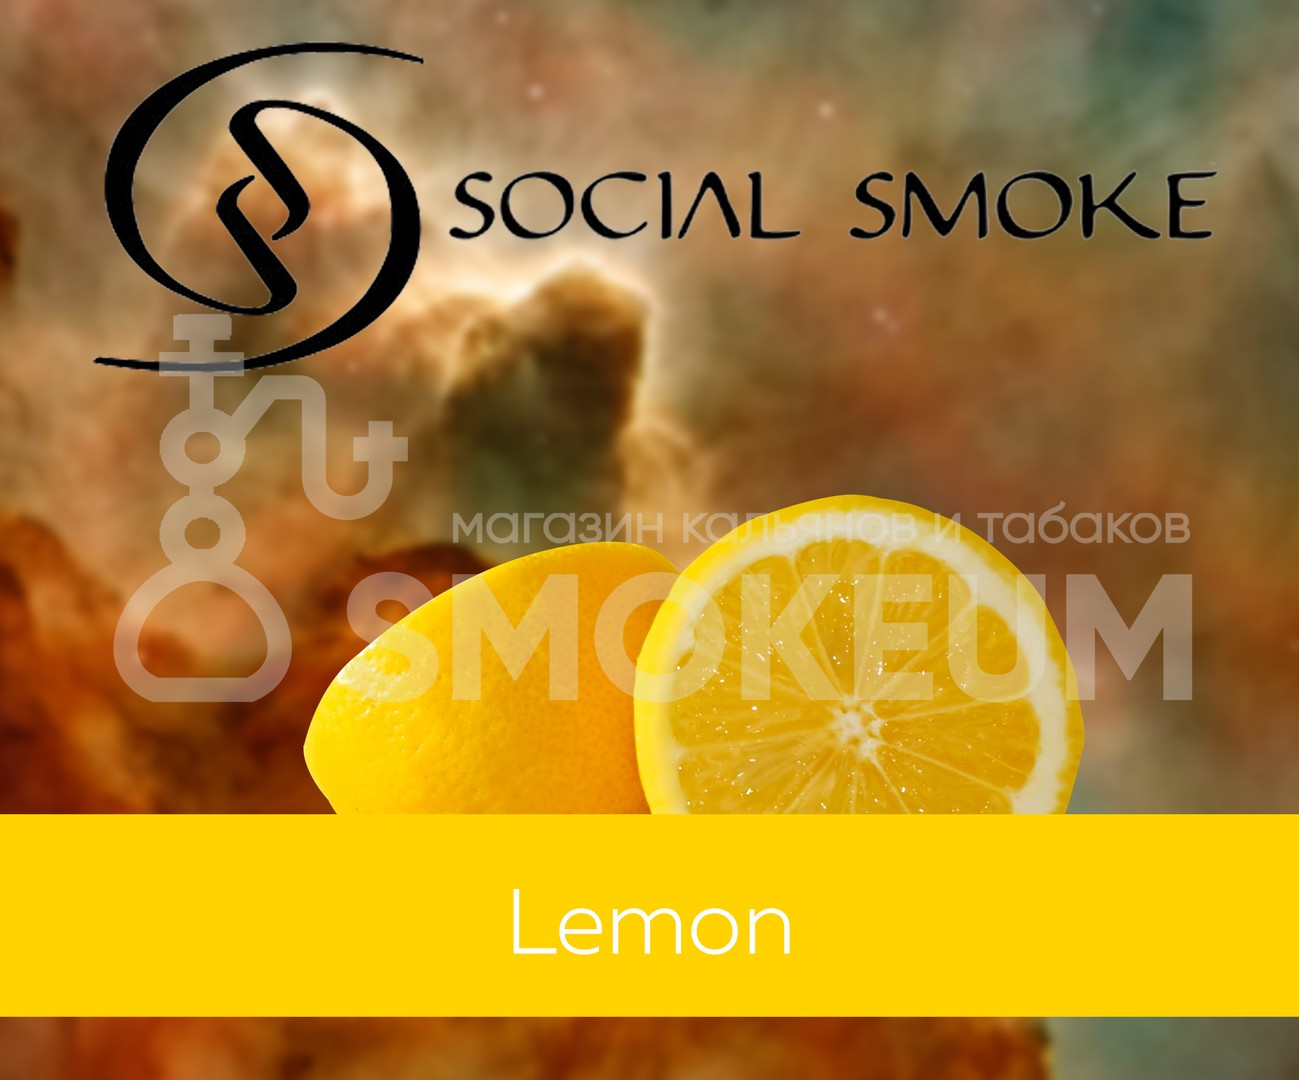 Табак Social Smoke - Lemon (Лимон) 250 гр